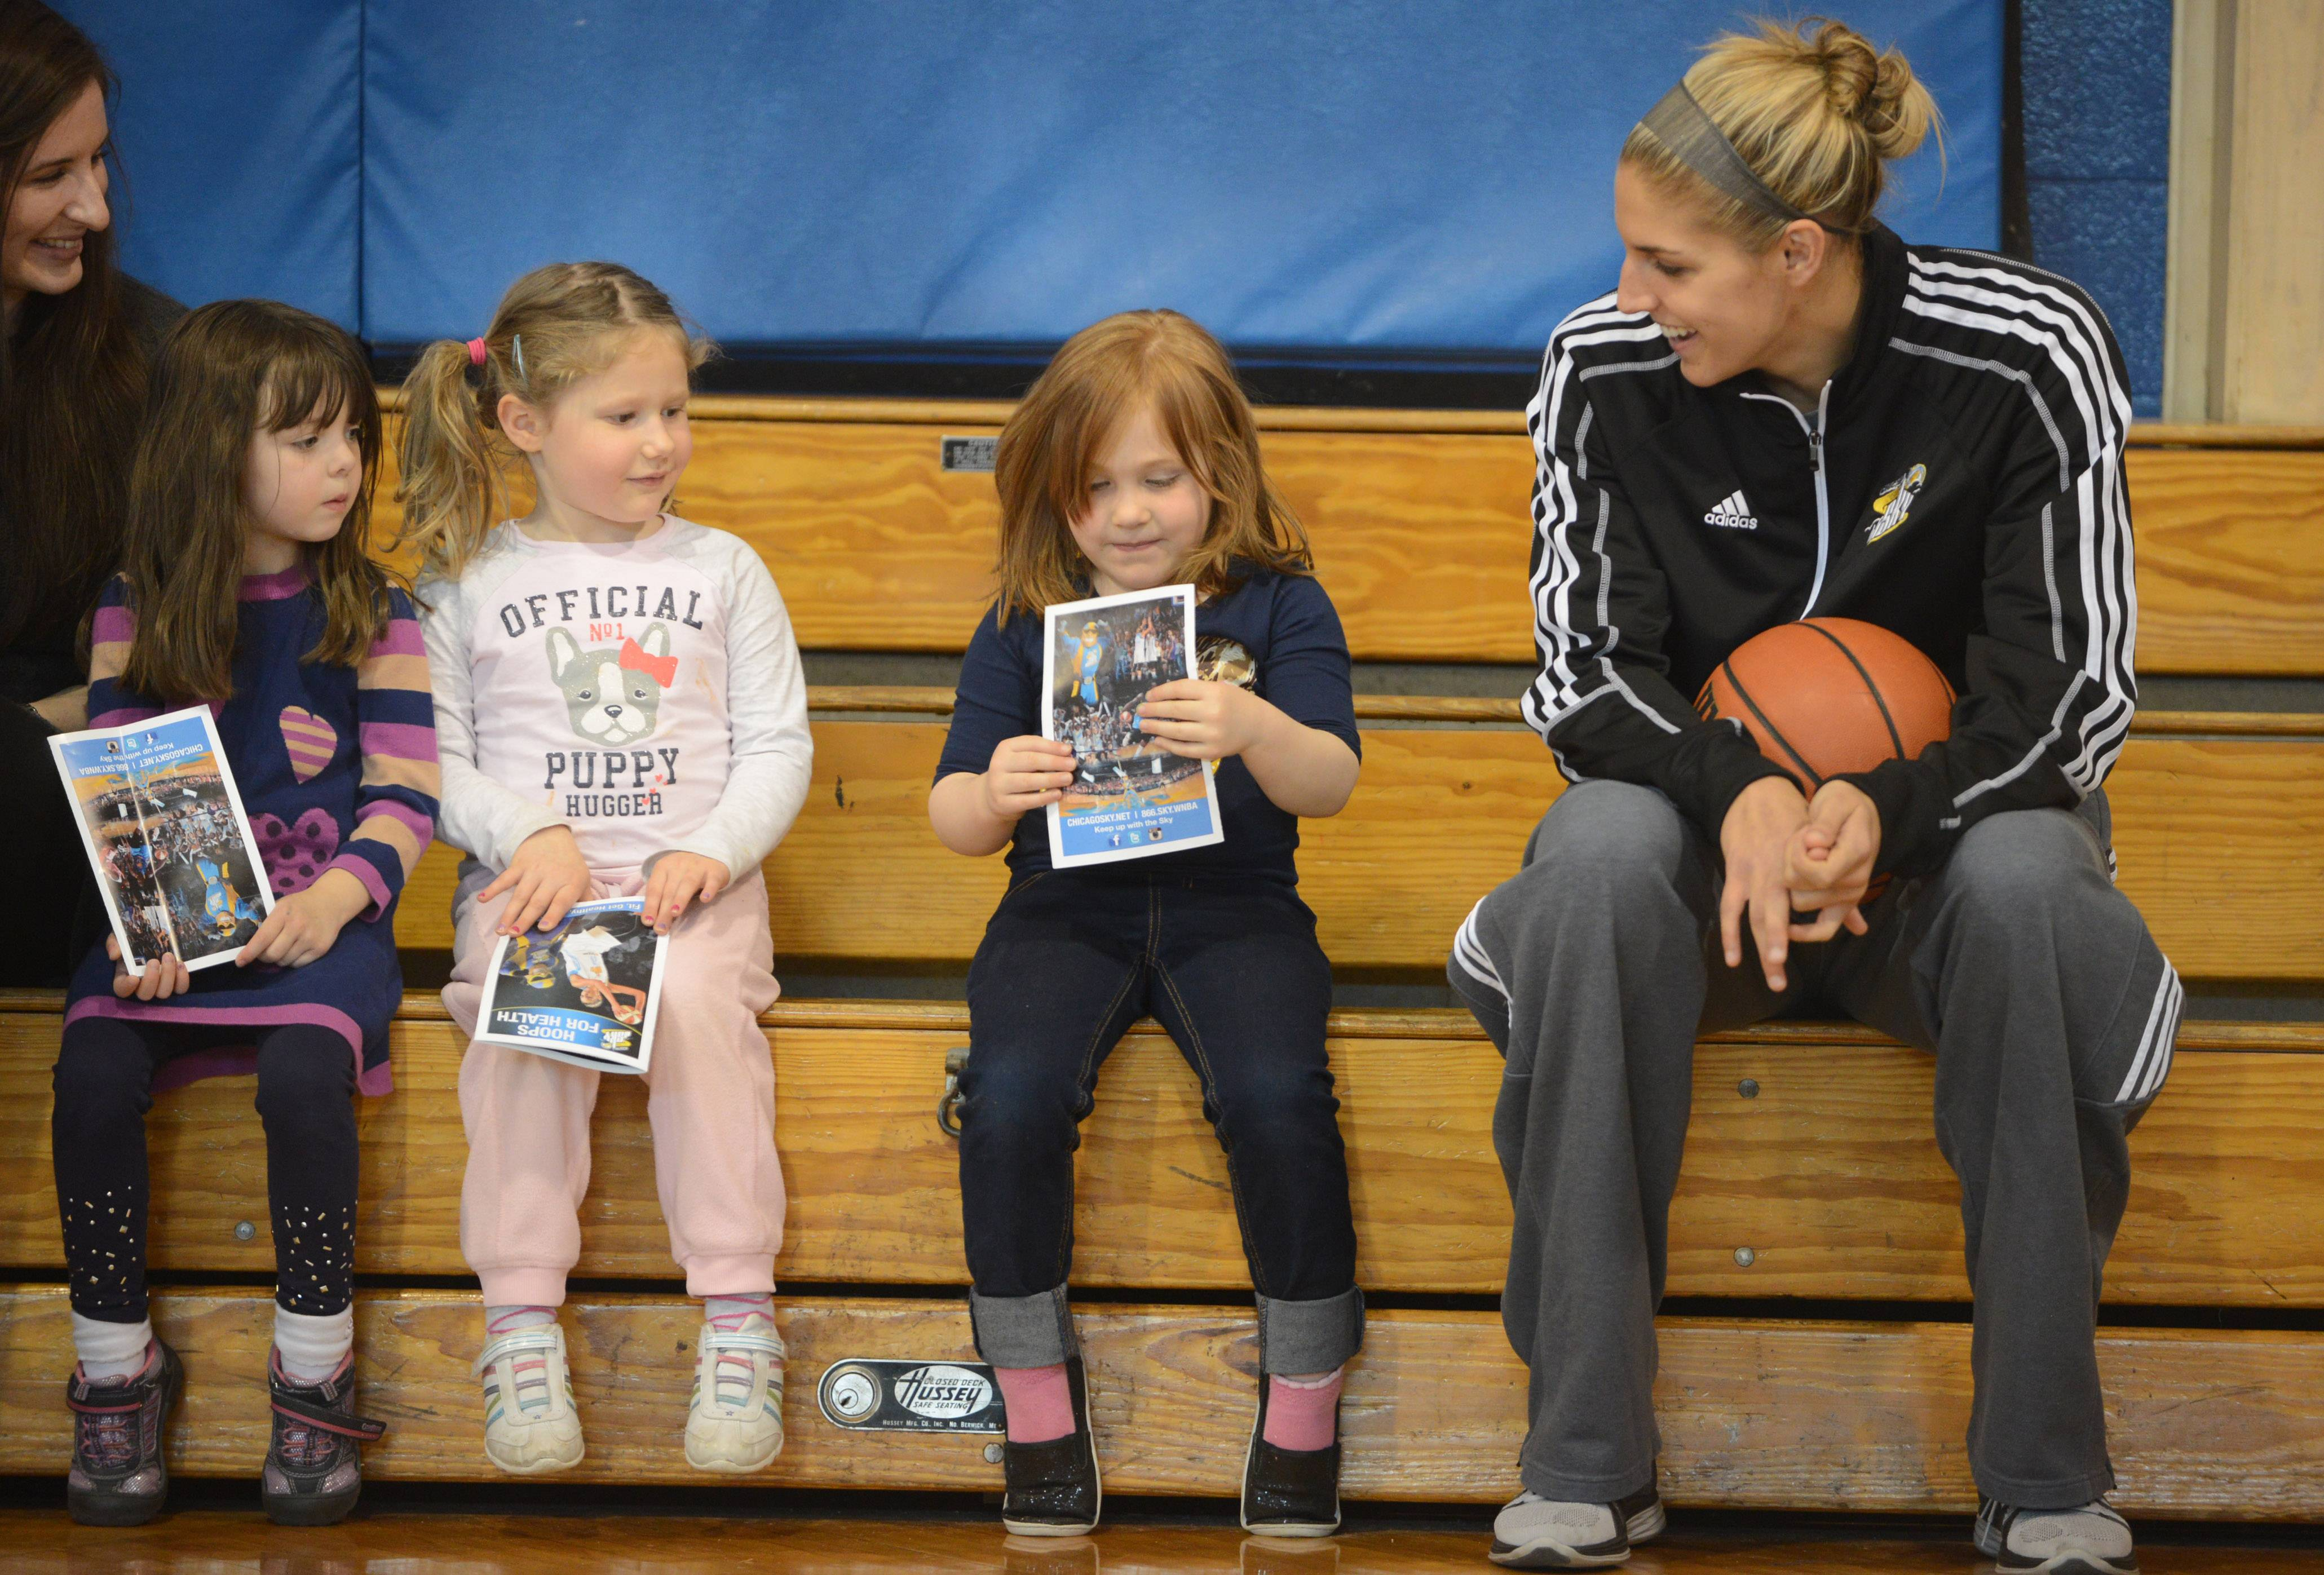 Chicago Sky player Elena Delle Donne, right, talks with St. Matthew preschool students from Emily Horbus, left, Caitlin Ruley and Sophia Krueger at the start of Tuesday's Hoops for Health program in Hawthorn Woods.